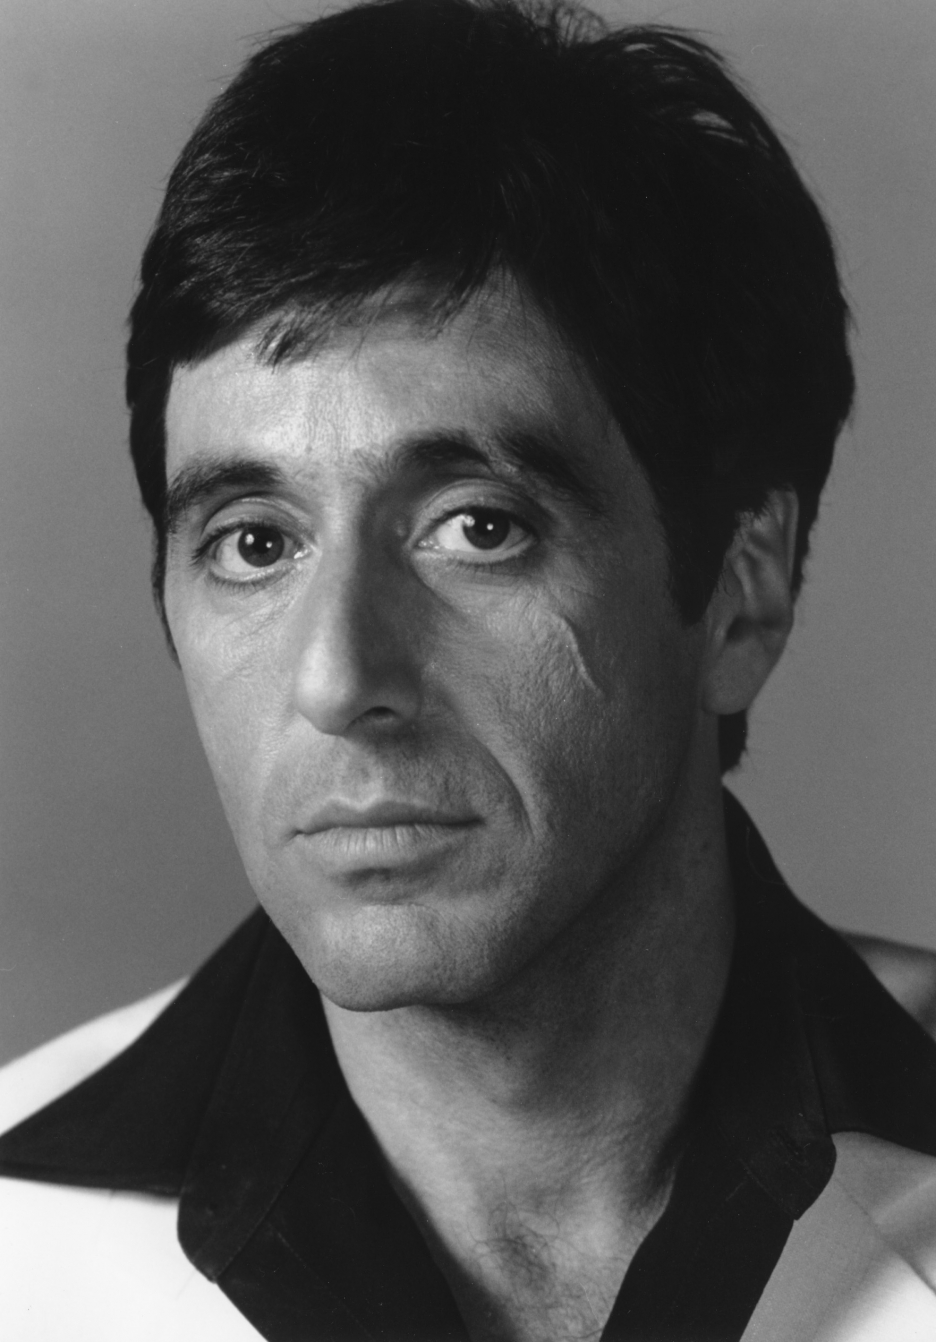 Al pacino hairstyle men hairstyles men hair styles - Scarface images ...